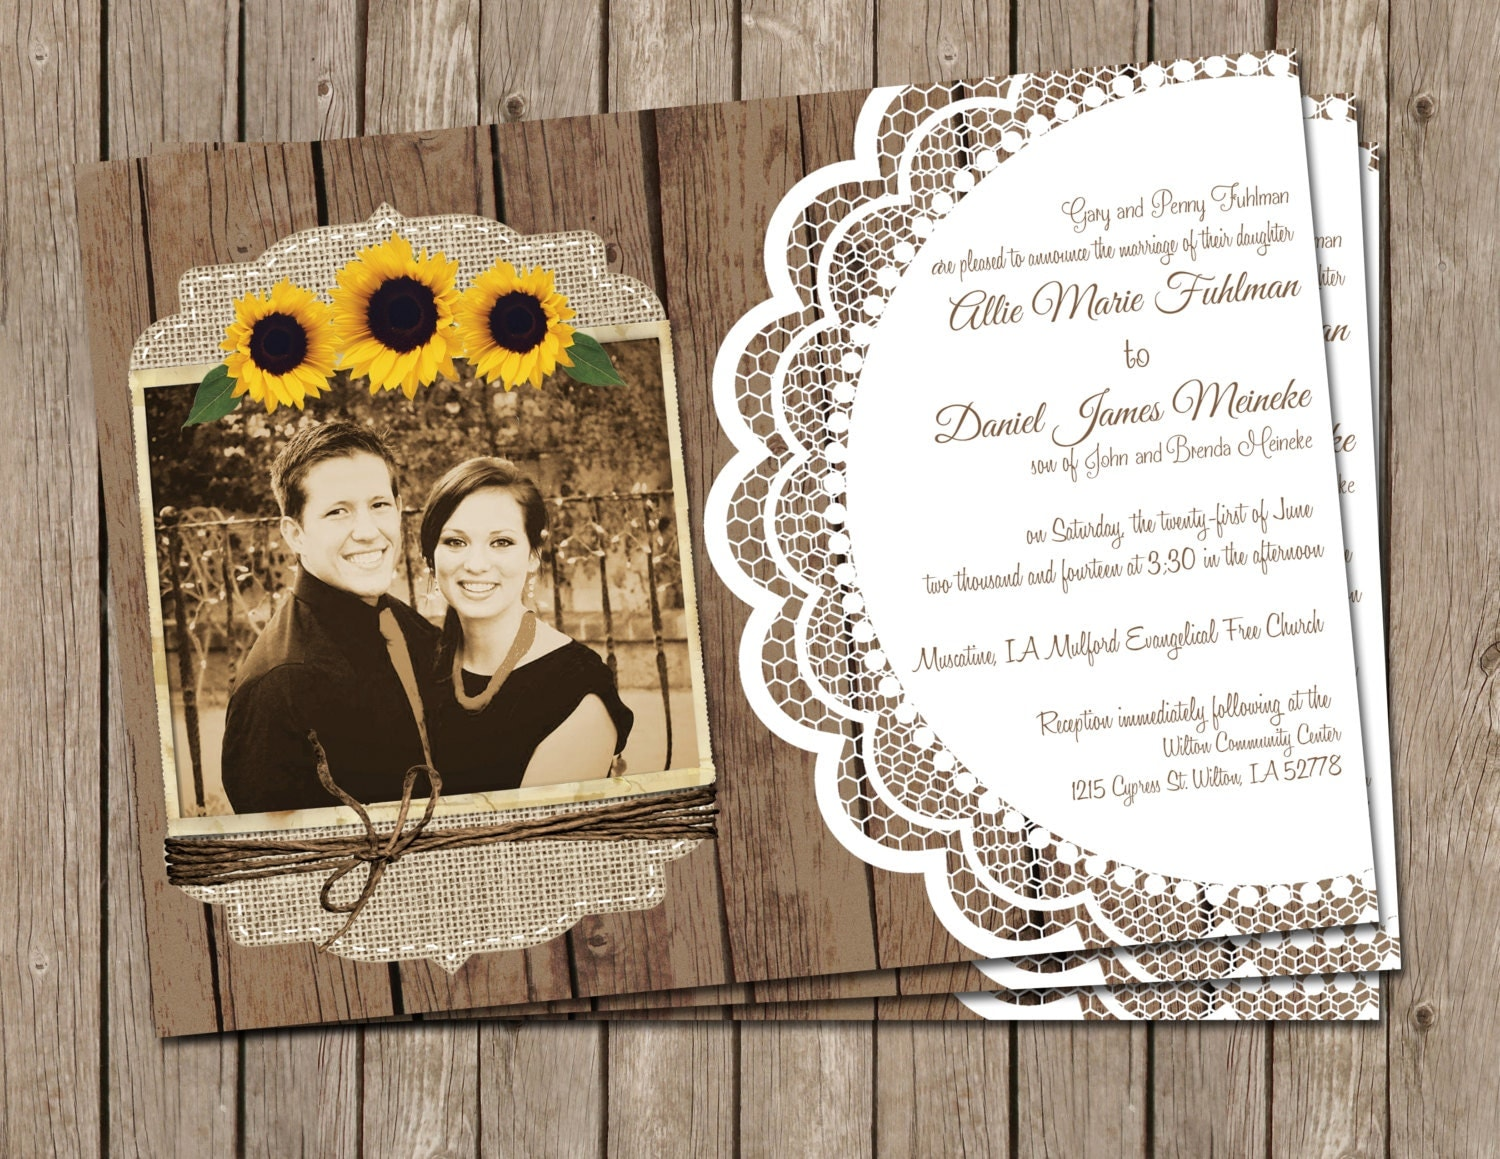 Cheap Sunflower Wedding Invitations: Sunflower Wedding InvitationBurlap And Lace Photo Digital